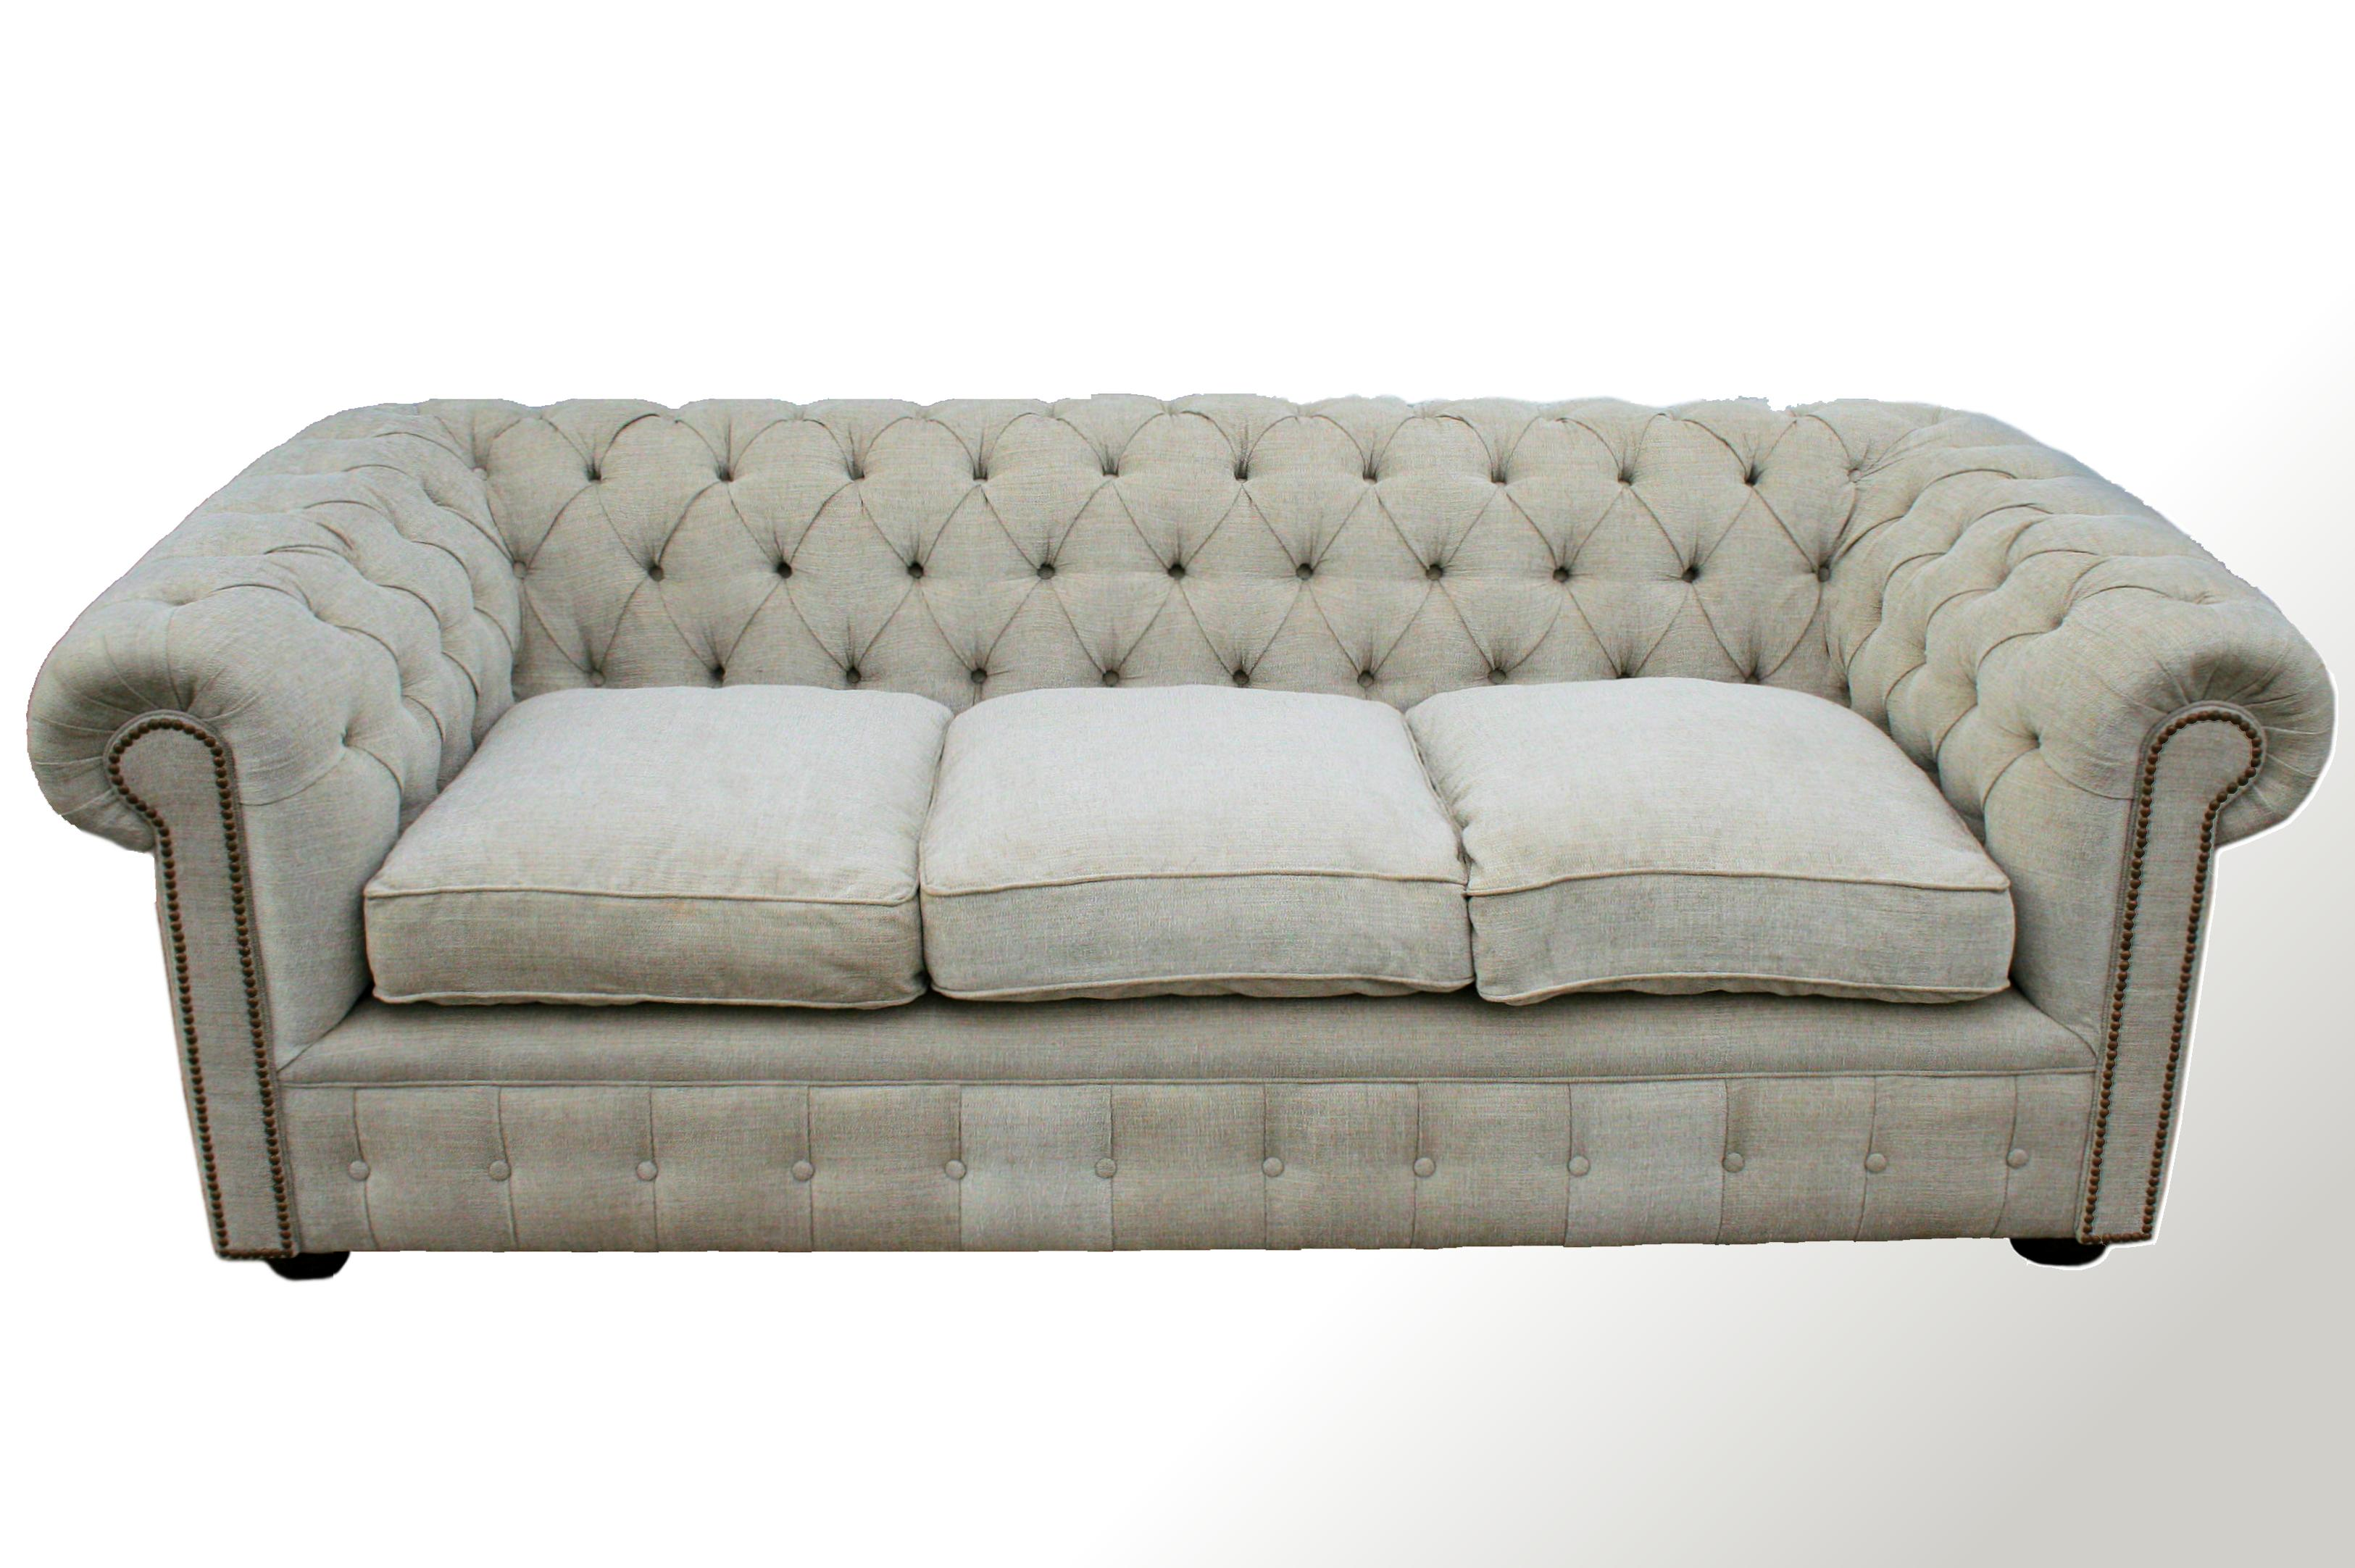 Sof chesterfield 3 cuerpos en lino chesterman a for Sofa 3 cuerpos akita